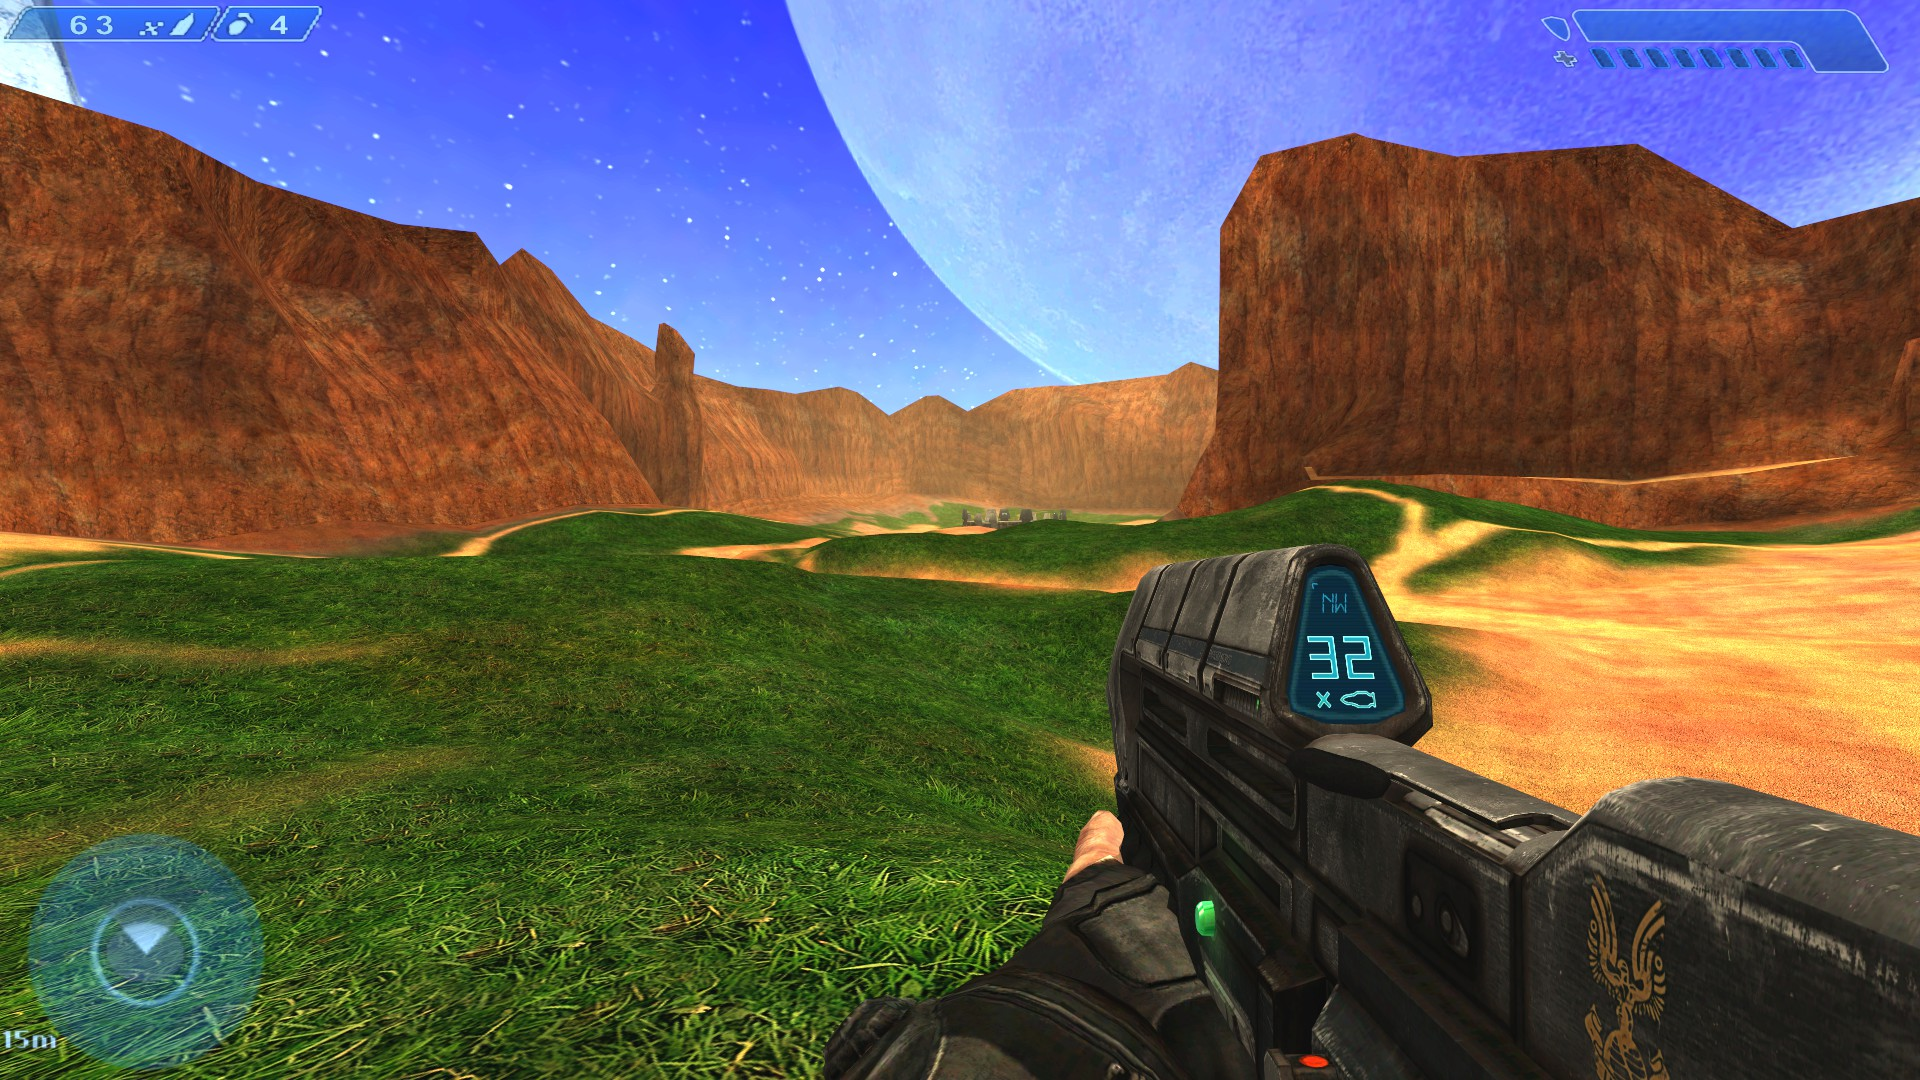 Halo custom edition halo ce maps: coldsnap.